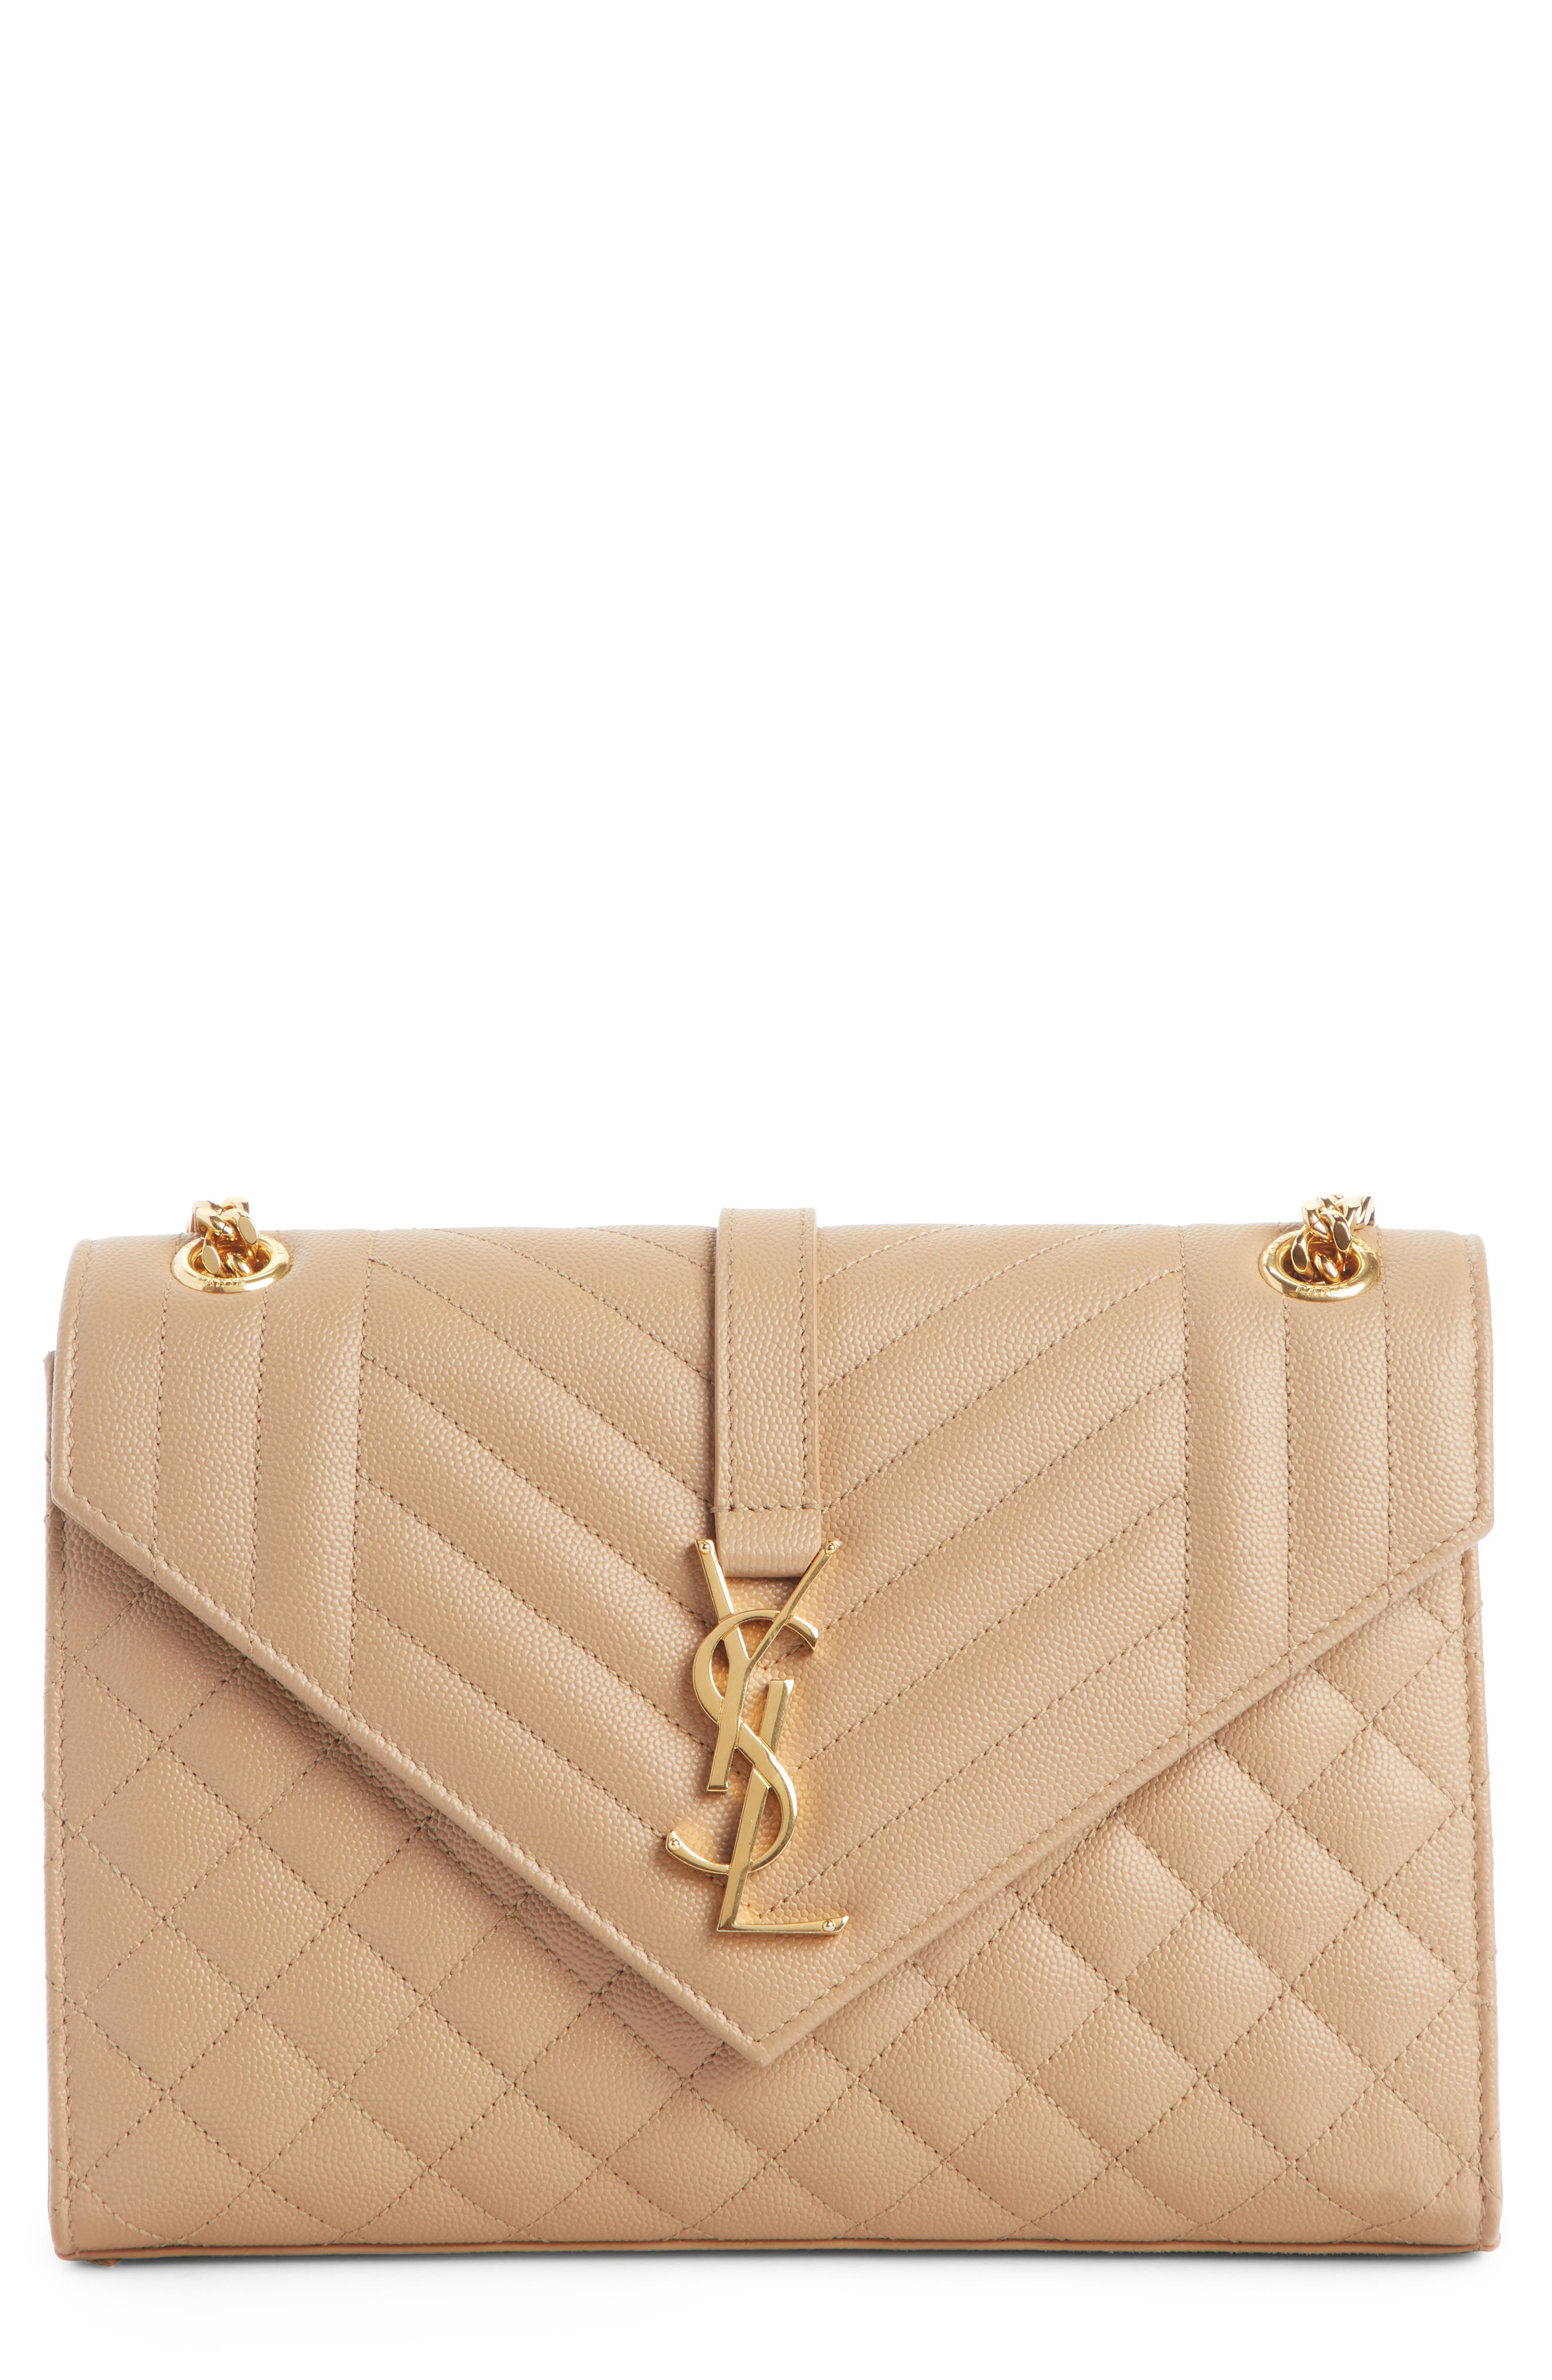 SAINT LAURENT,                             Large Cassandra Calfskin Shoulder Bag,                             Main thumbnail 1, color,                             CORK/ CORK